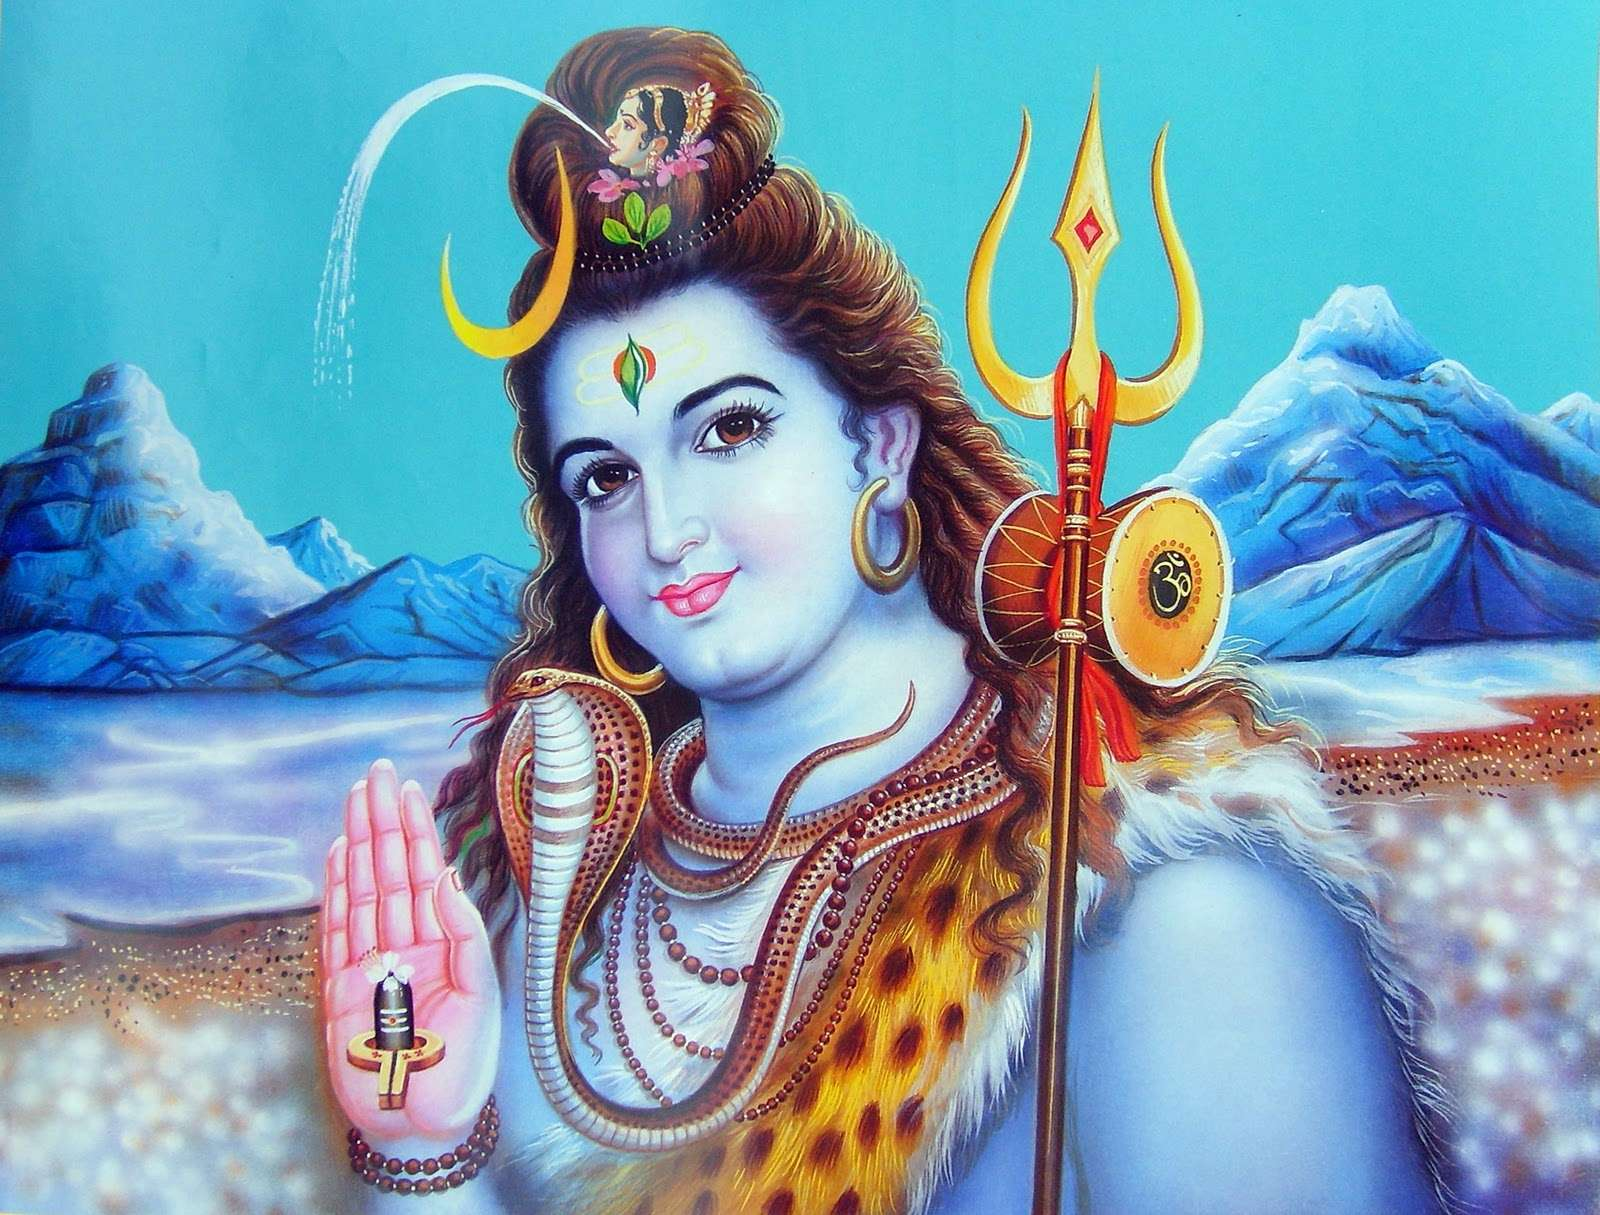 Boom Shiva Hd Wallpapers Free Download The Galleries Of Hd Wallpaper